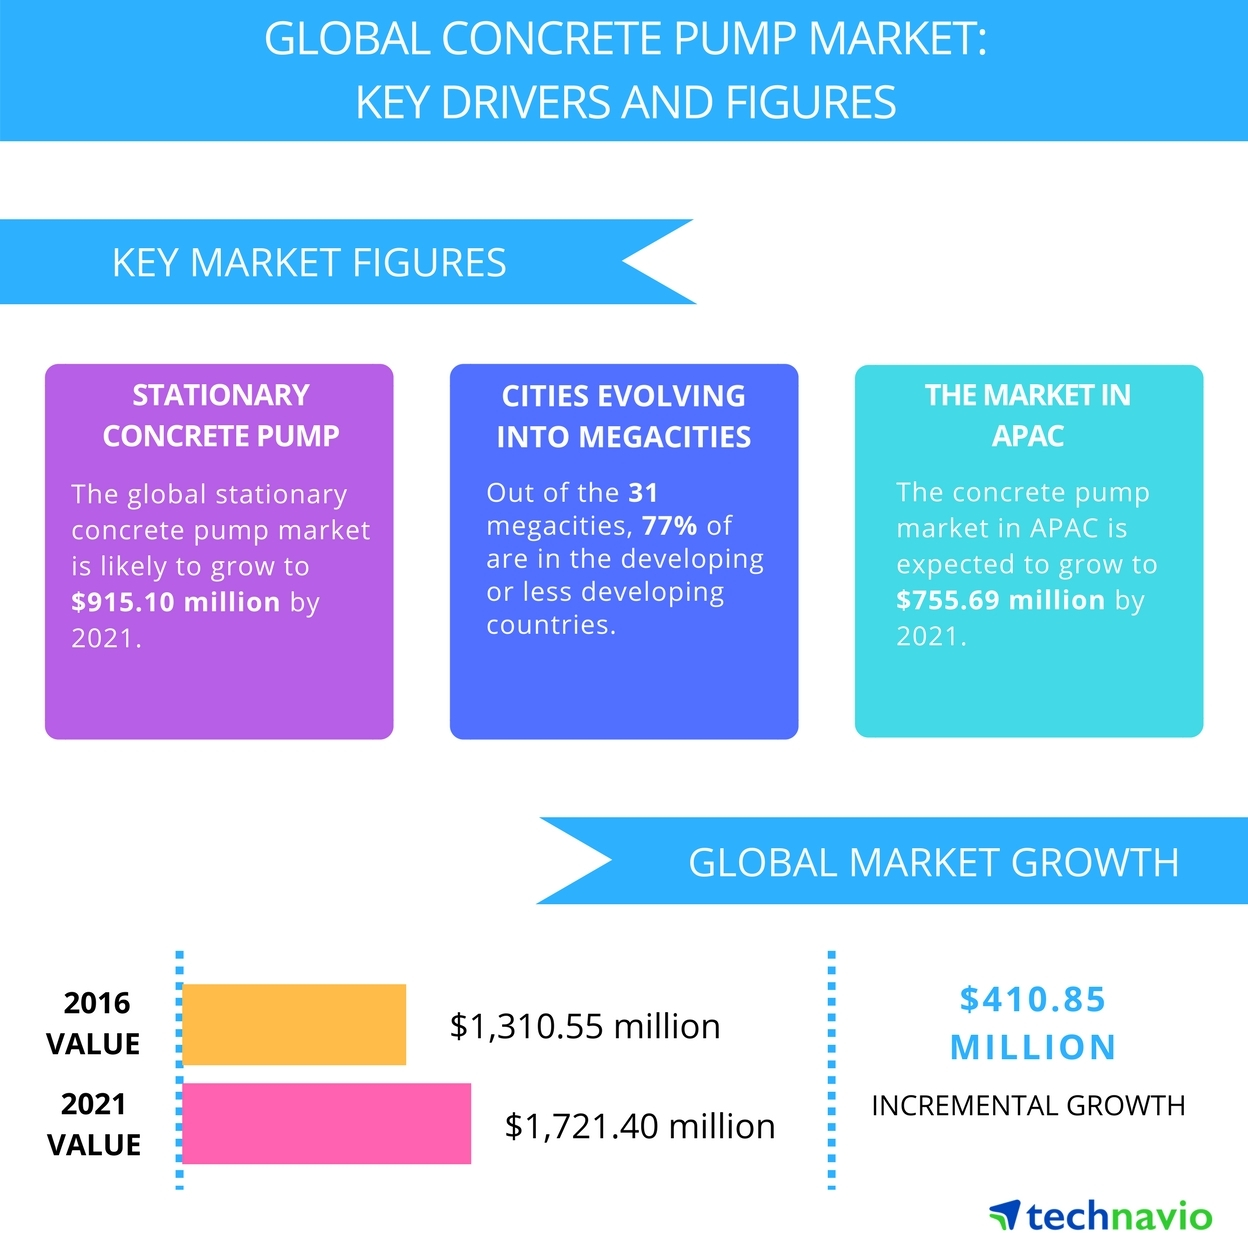 Technavio has published a new report on the global concrete pump market from 2017-2021. (Graphic: Business Wire)